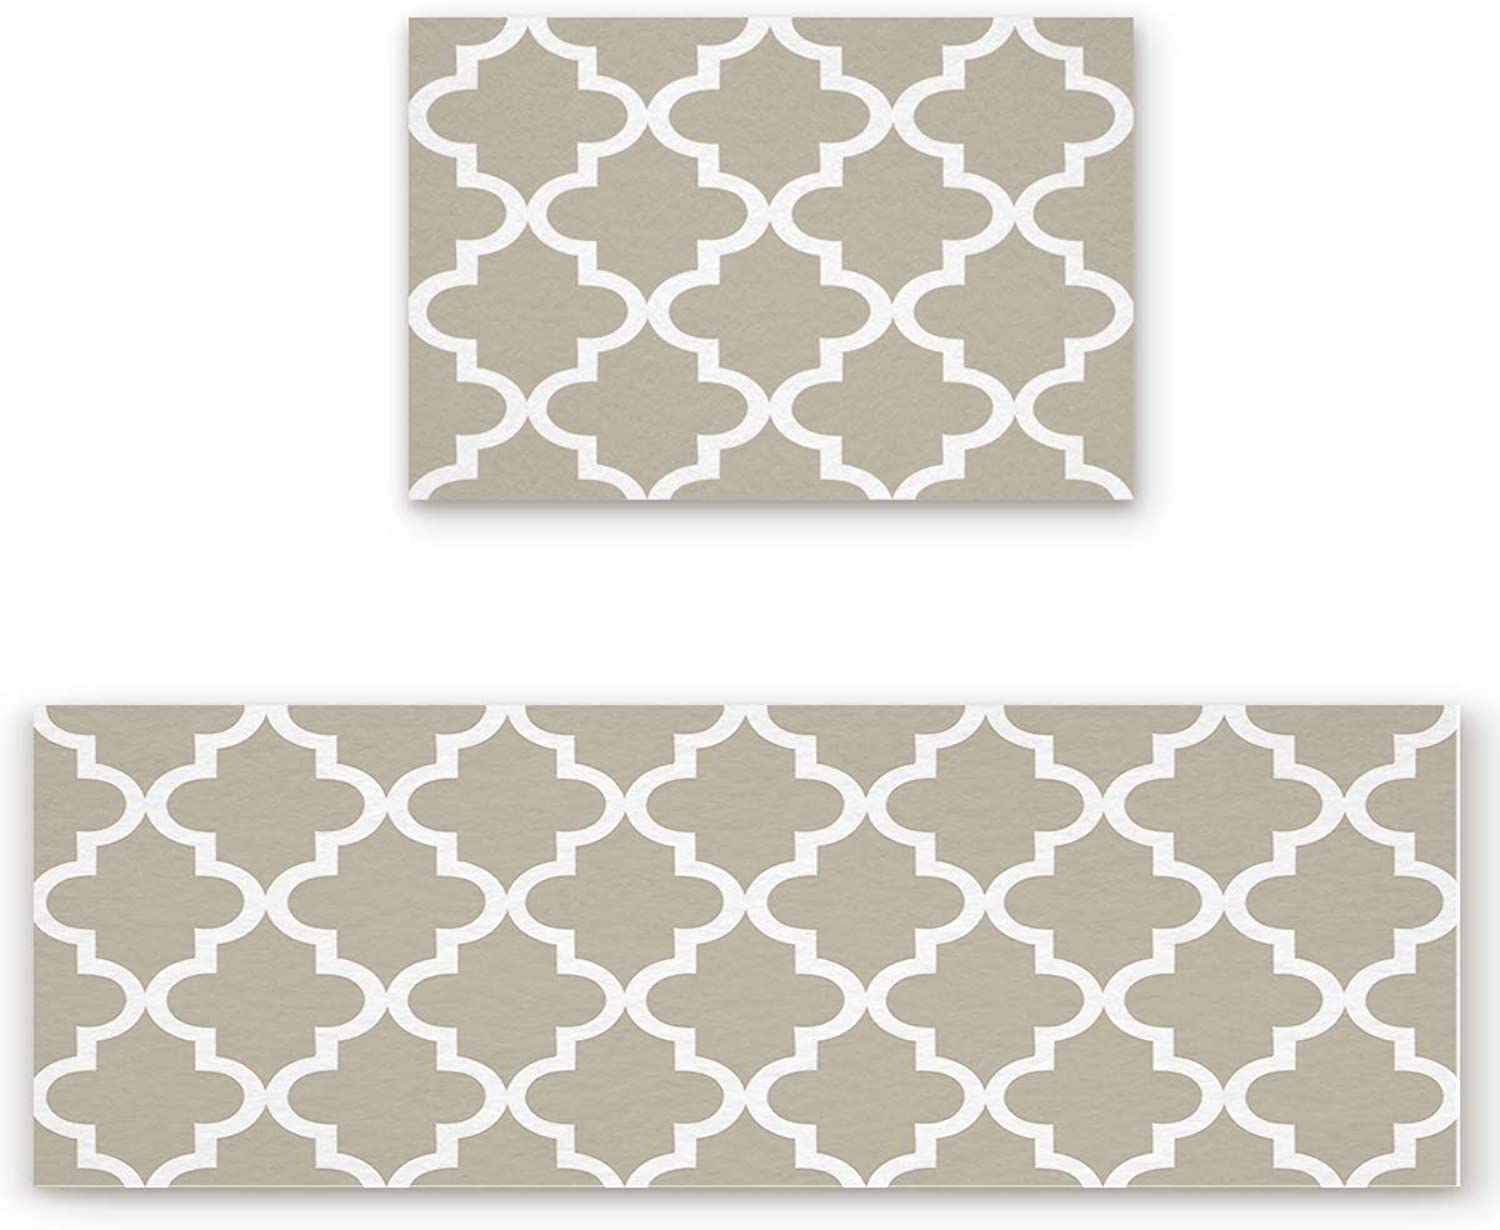 Savannan 2 Piece Non-Slip Kitchen Bathroom Entrance Mat Absorbent Durable Floor Doormat Runner Rug Set - Mgoldccan Tile Quatrefoil Pattern in Grey